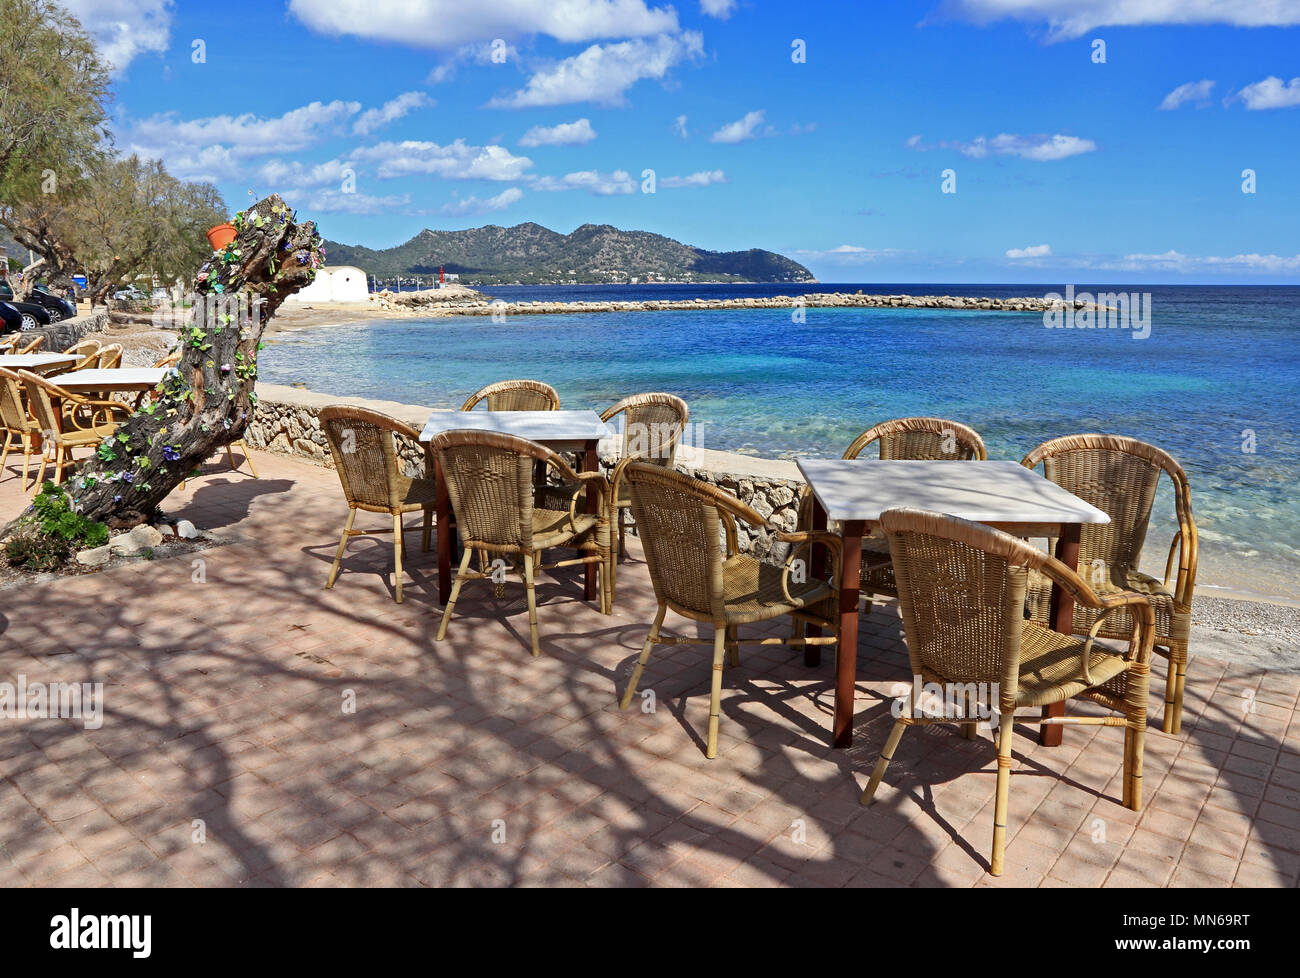 Rattan chairs and tables outside bar, Cala Millor, Mallorca - Stock Image